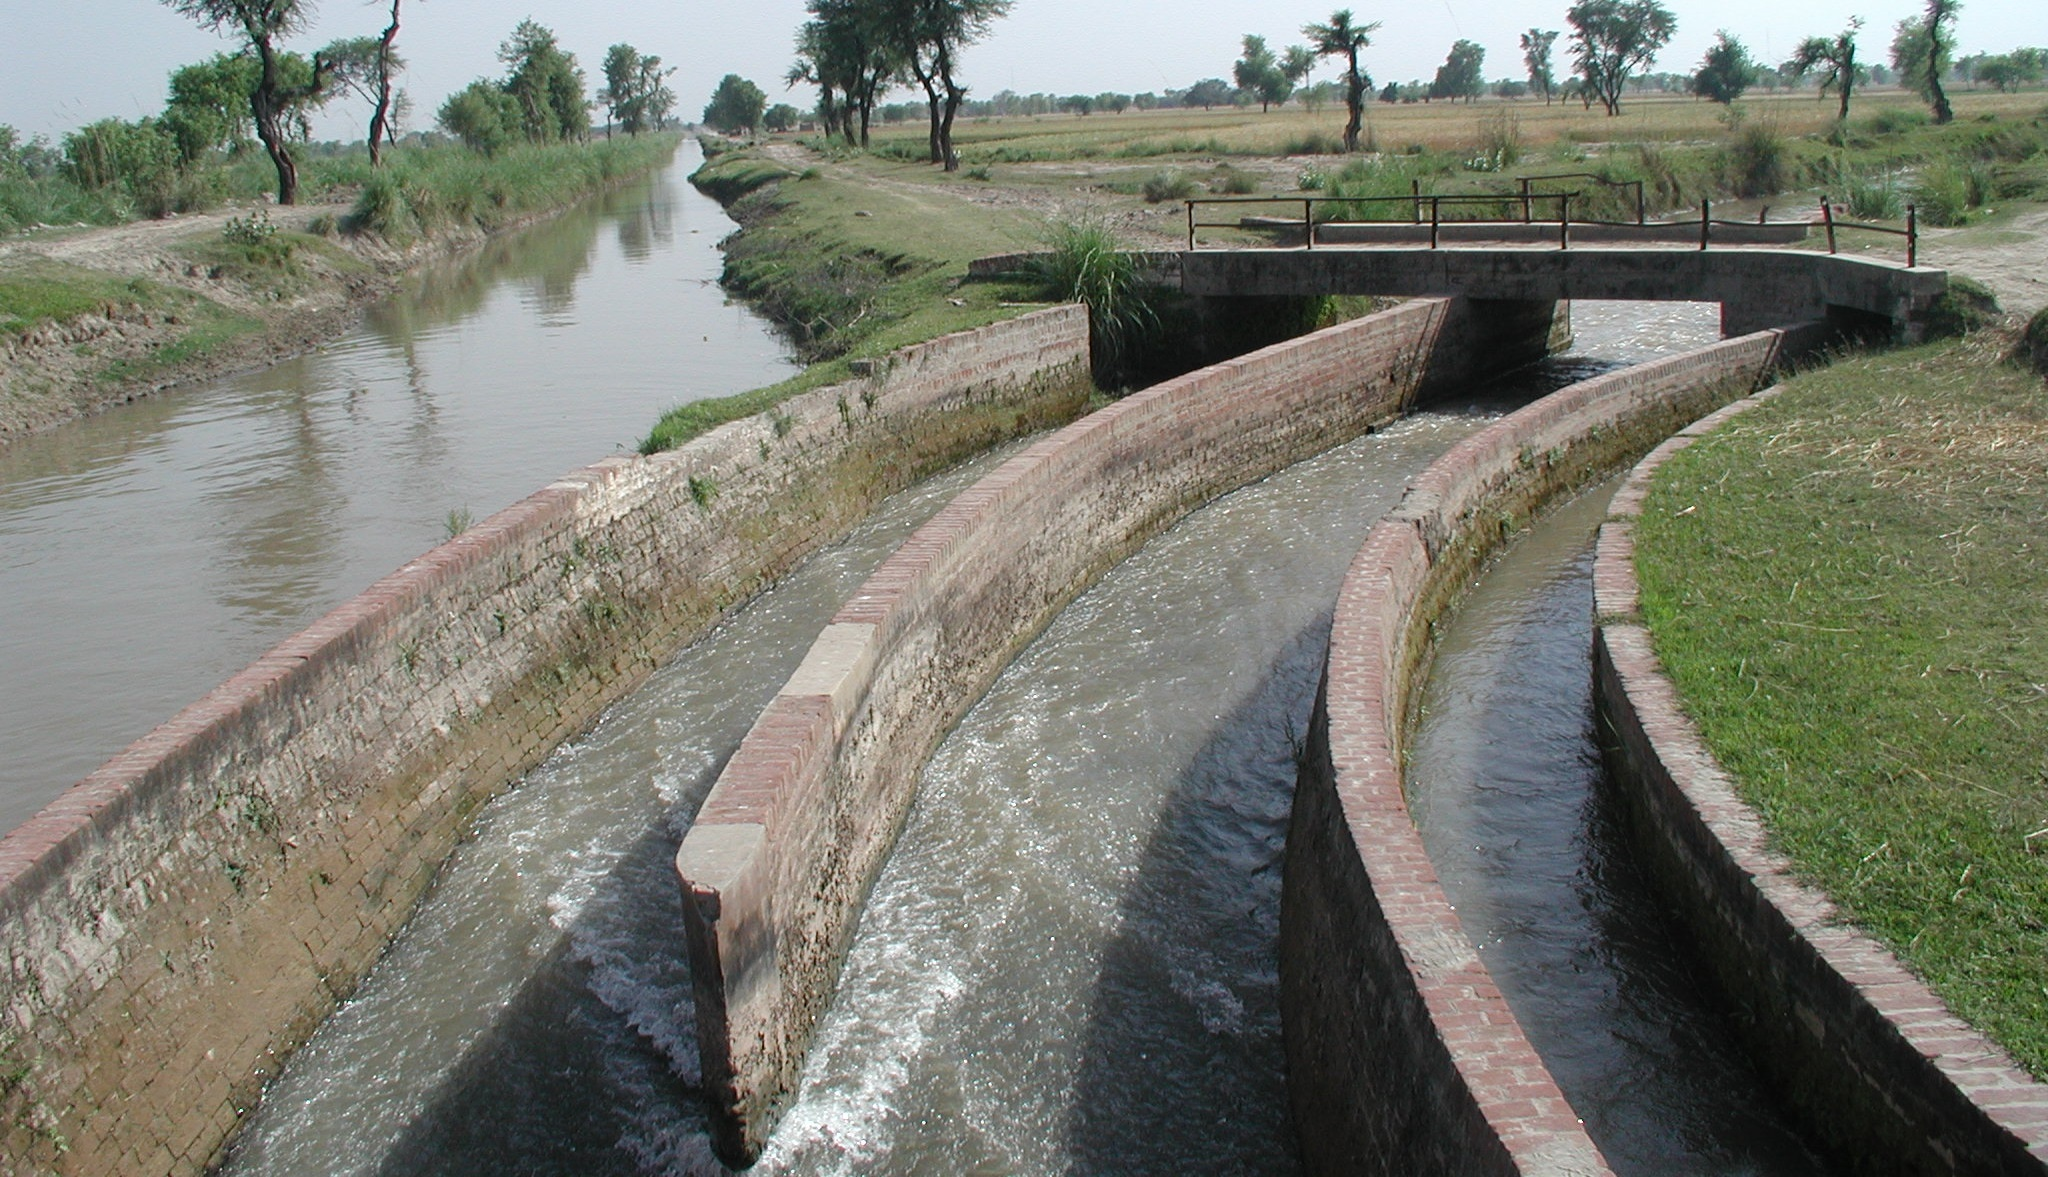 Water channels in Pakistan